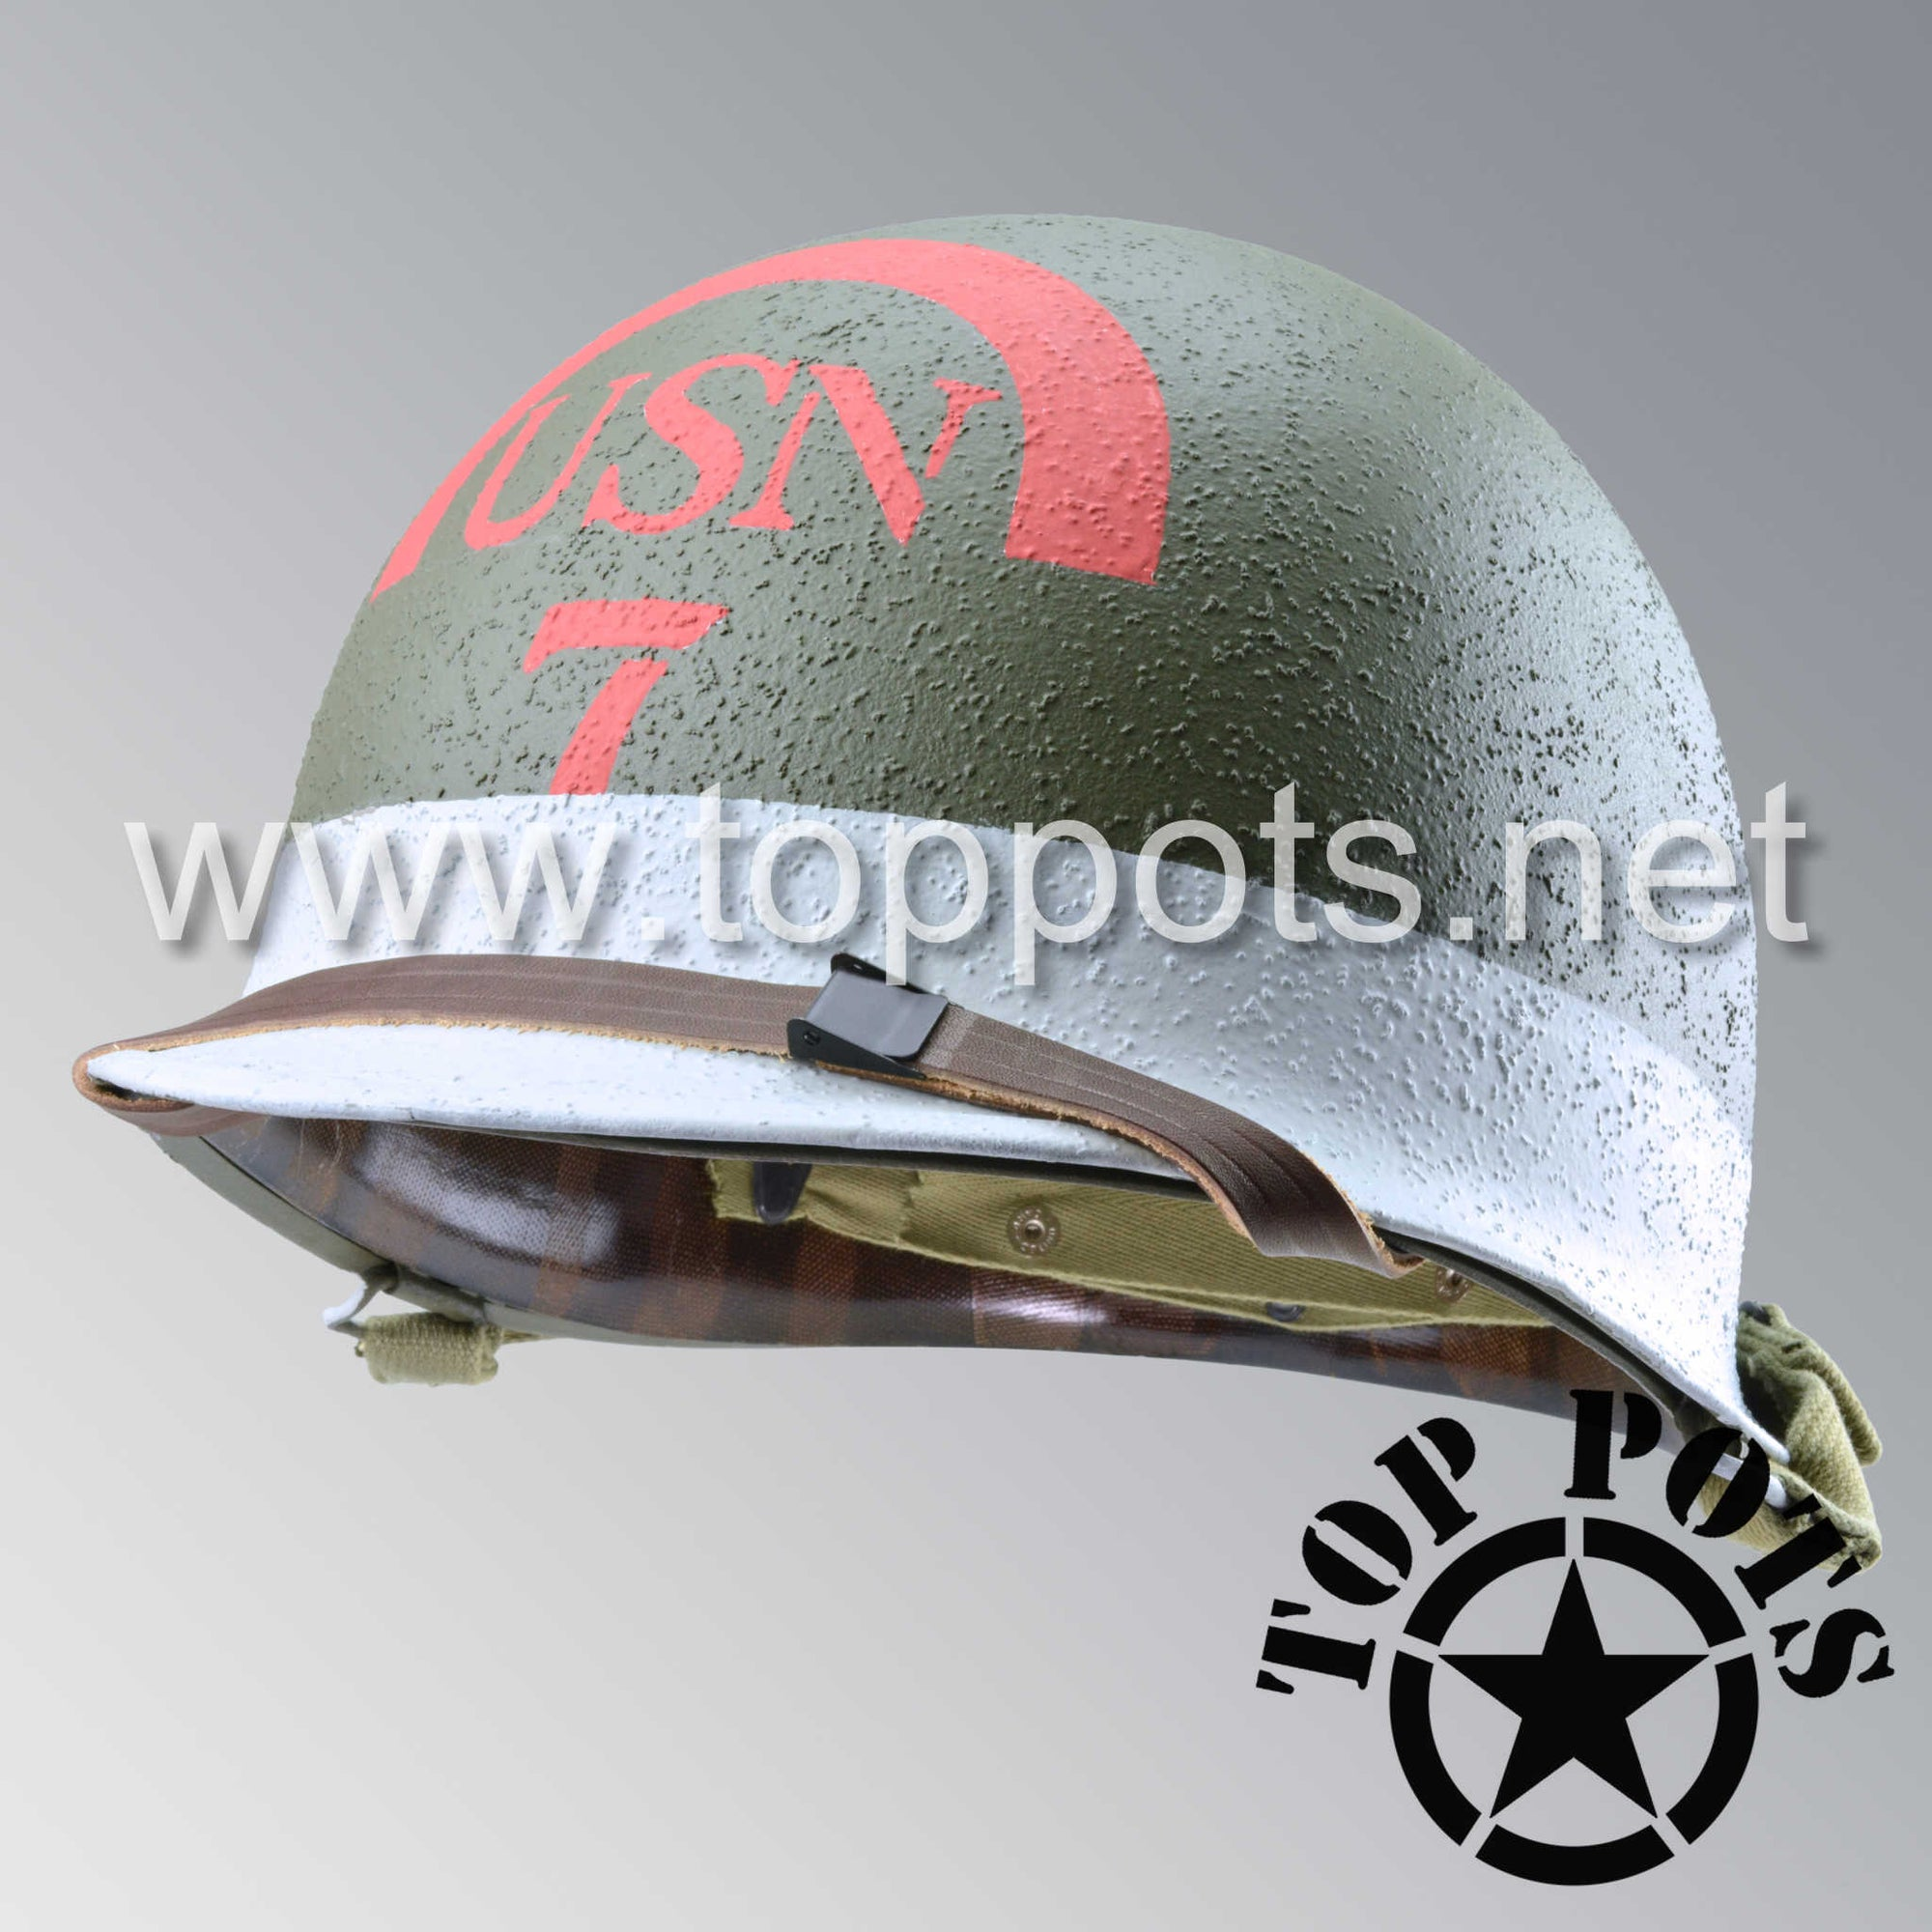 Image 1 of WWII US Navy Restored Original M1 Infantry Helmet Swivel Bale Shell and Liner with 7th Naval Beach Battalion USN Emblem